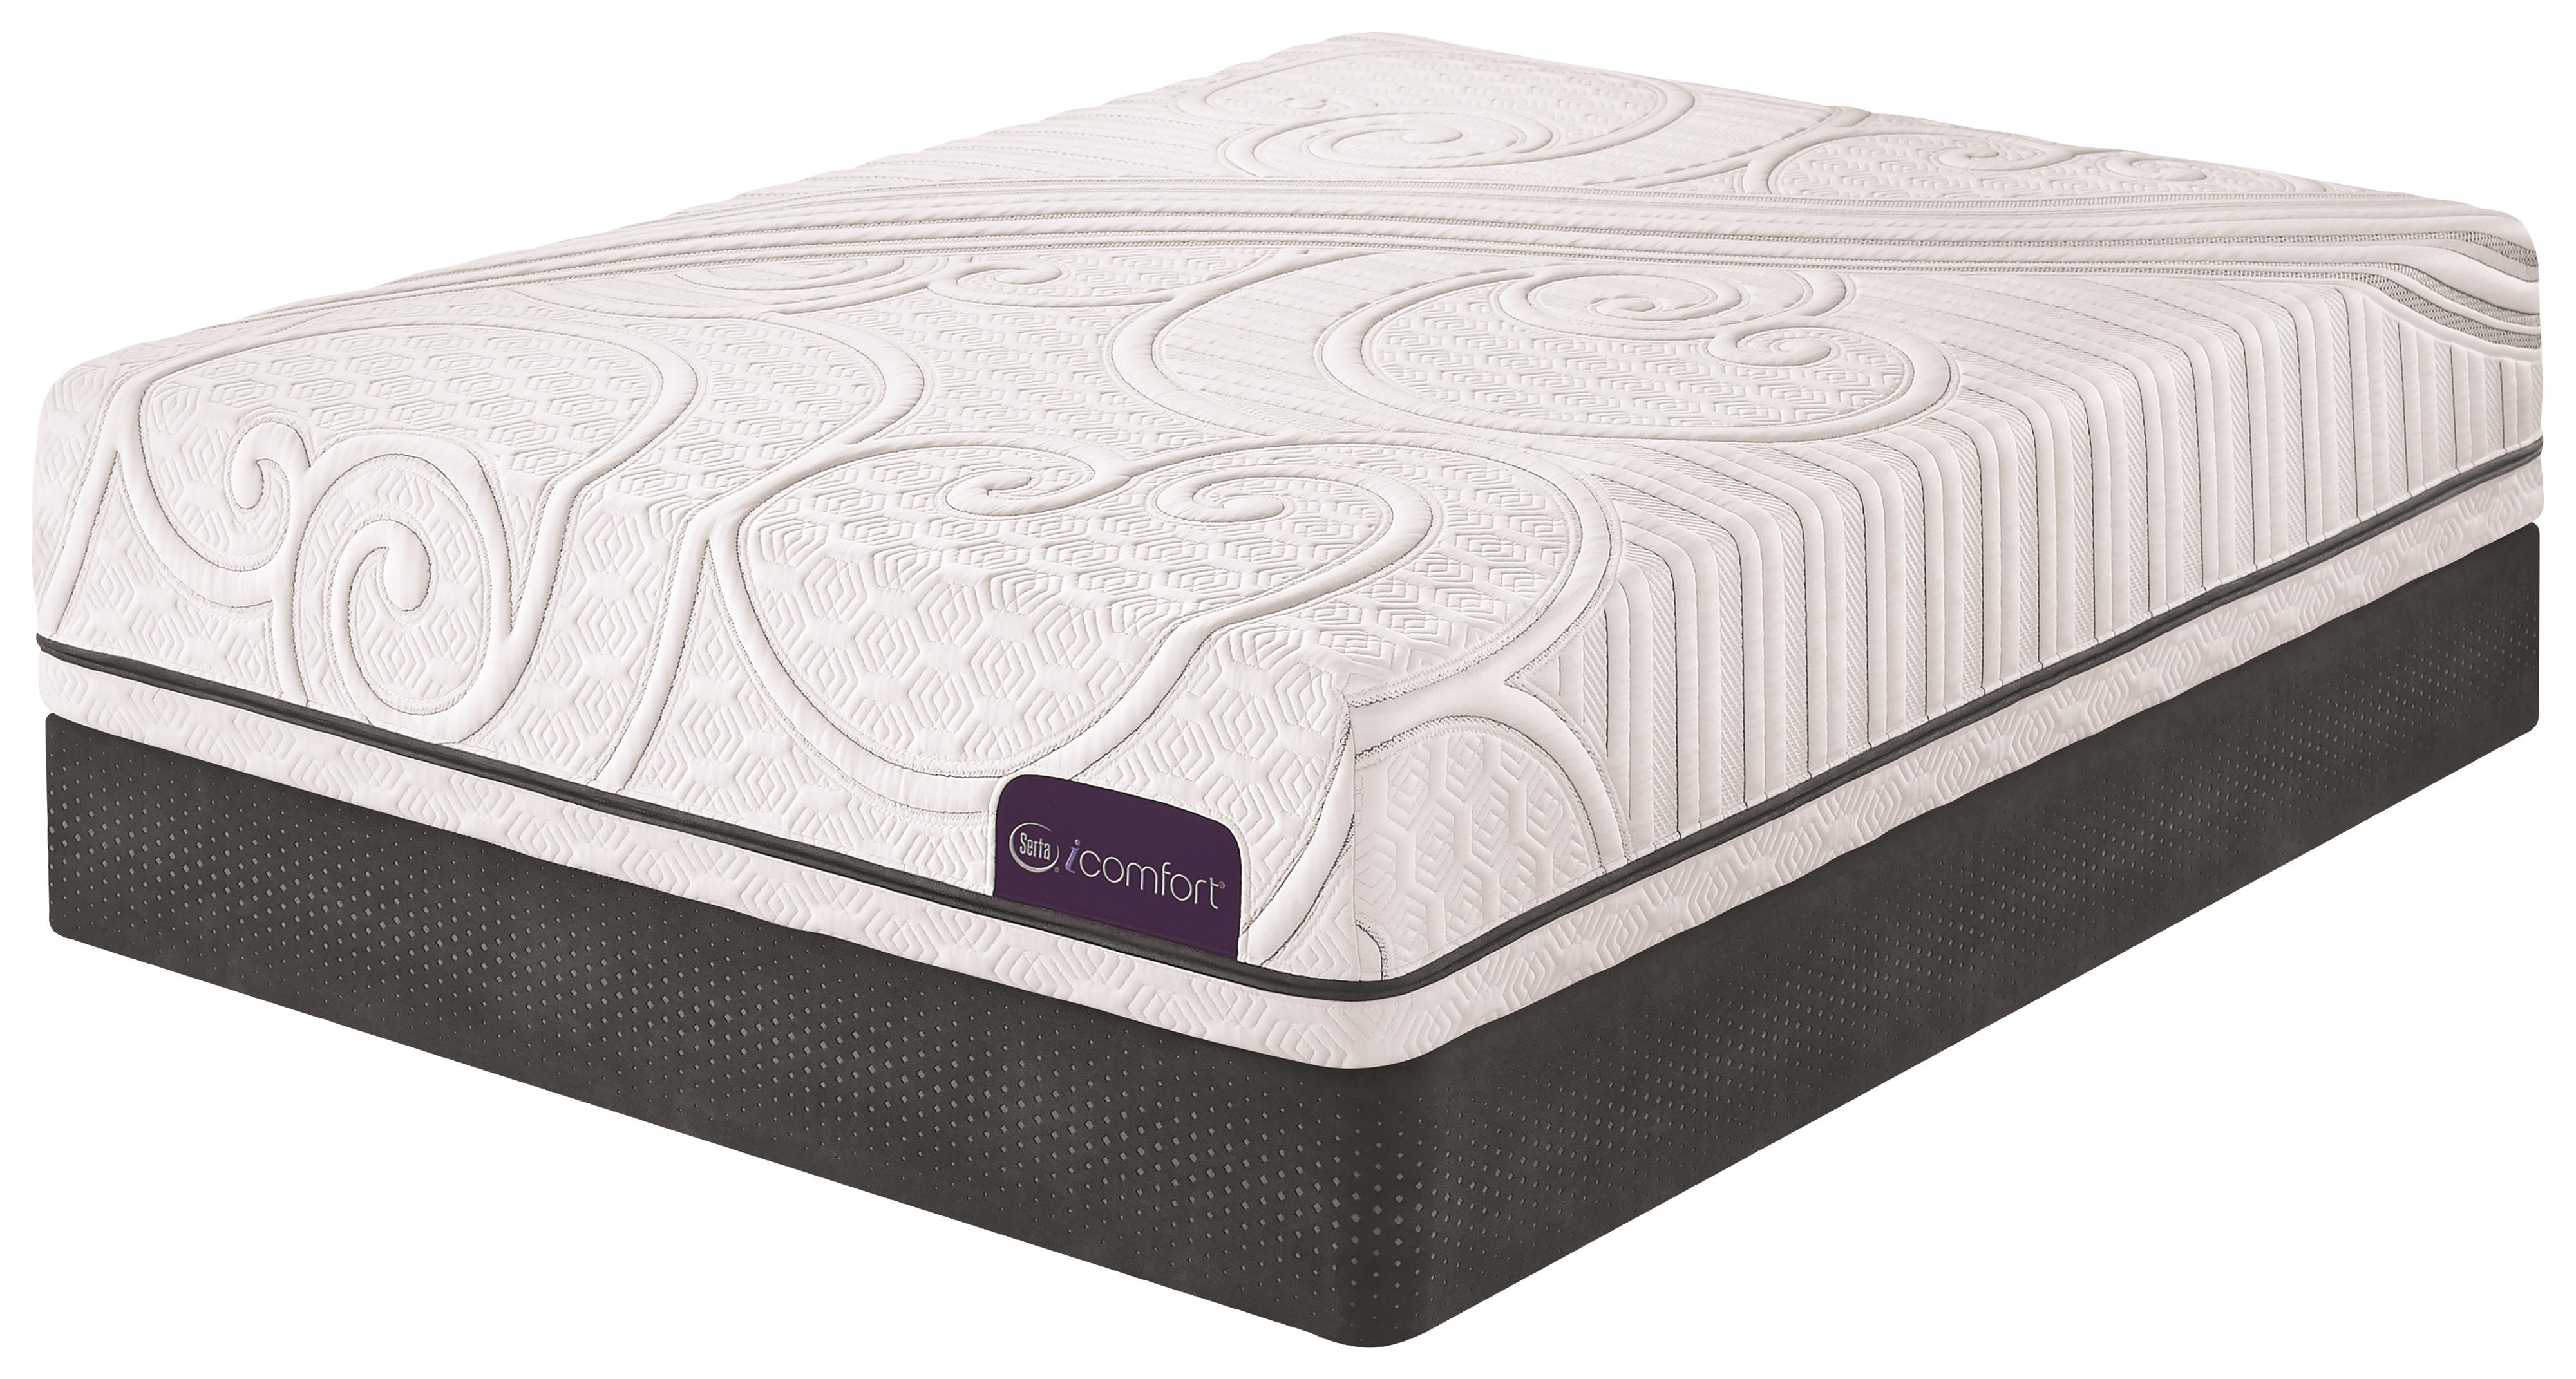 Serta iComfort Guidance Twin XL Gel Memory Foam Mattress Set, Adj - Item Number: Guidance-TXL+MCII-TXL